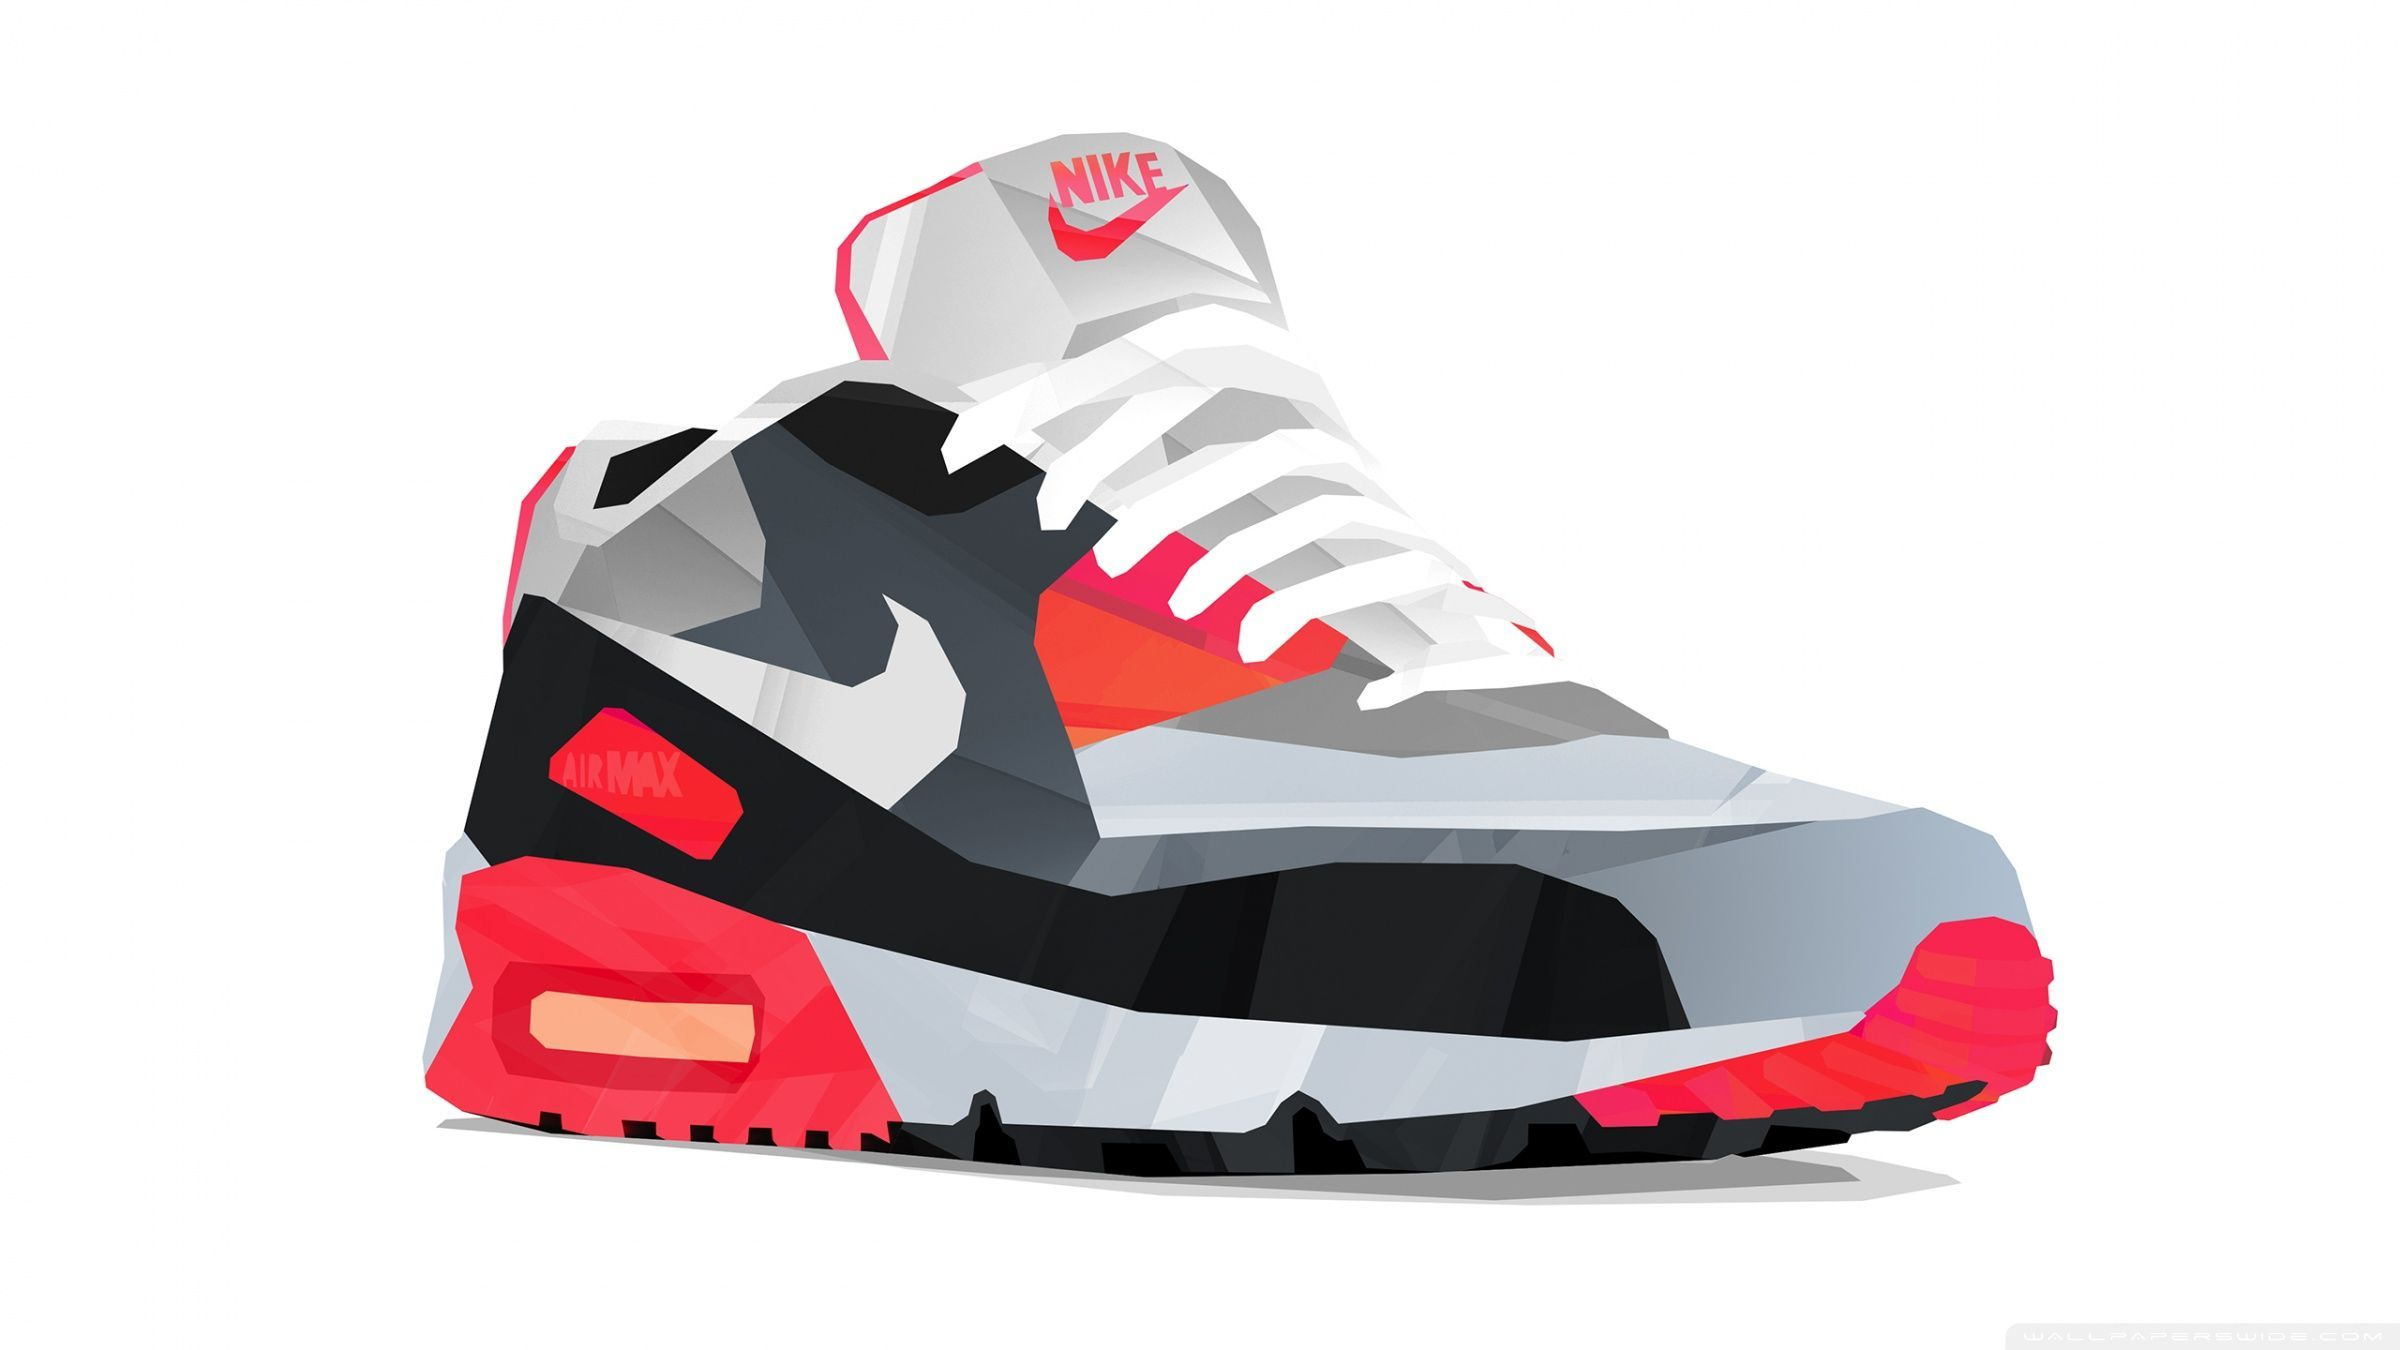 2400x1350 Nike Air Max 90 Wallpapers